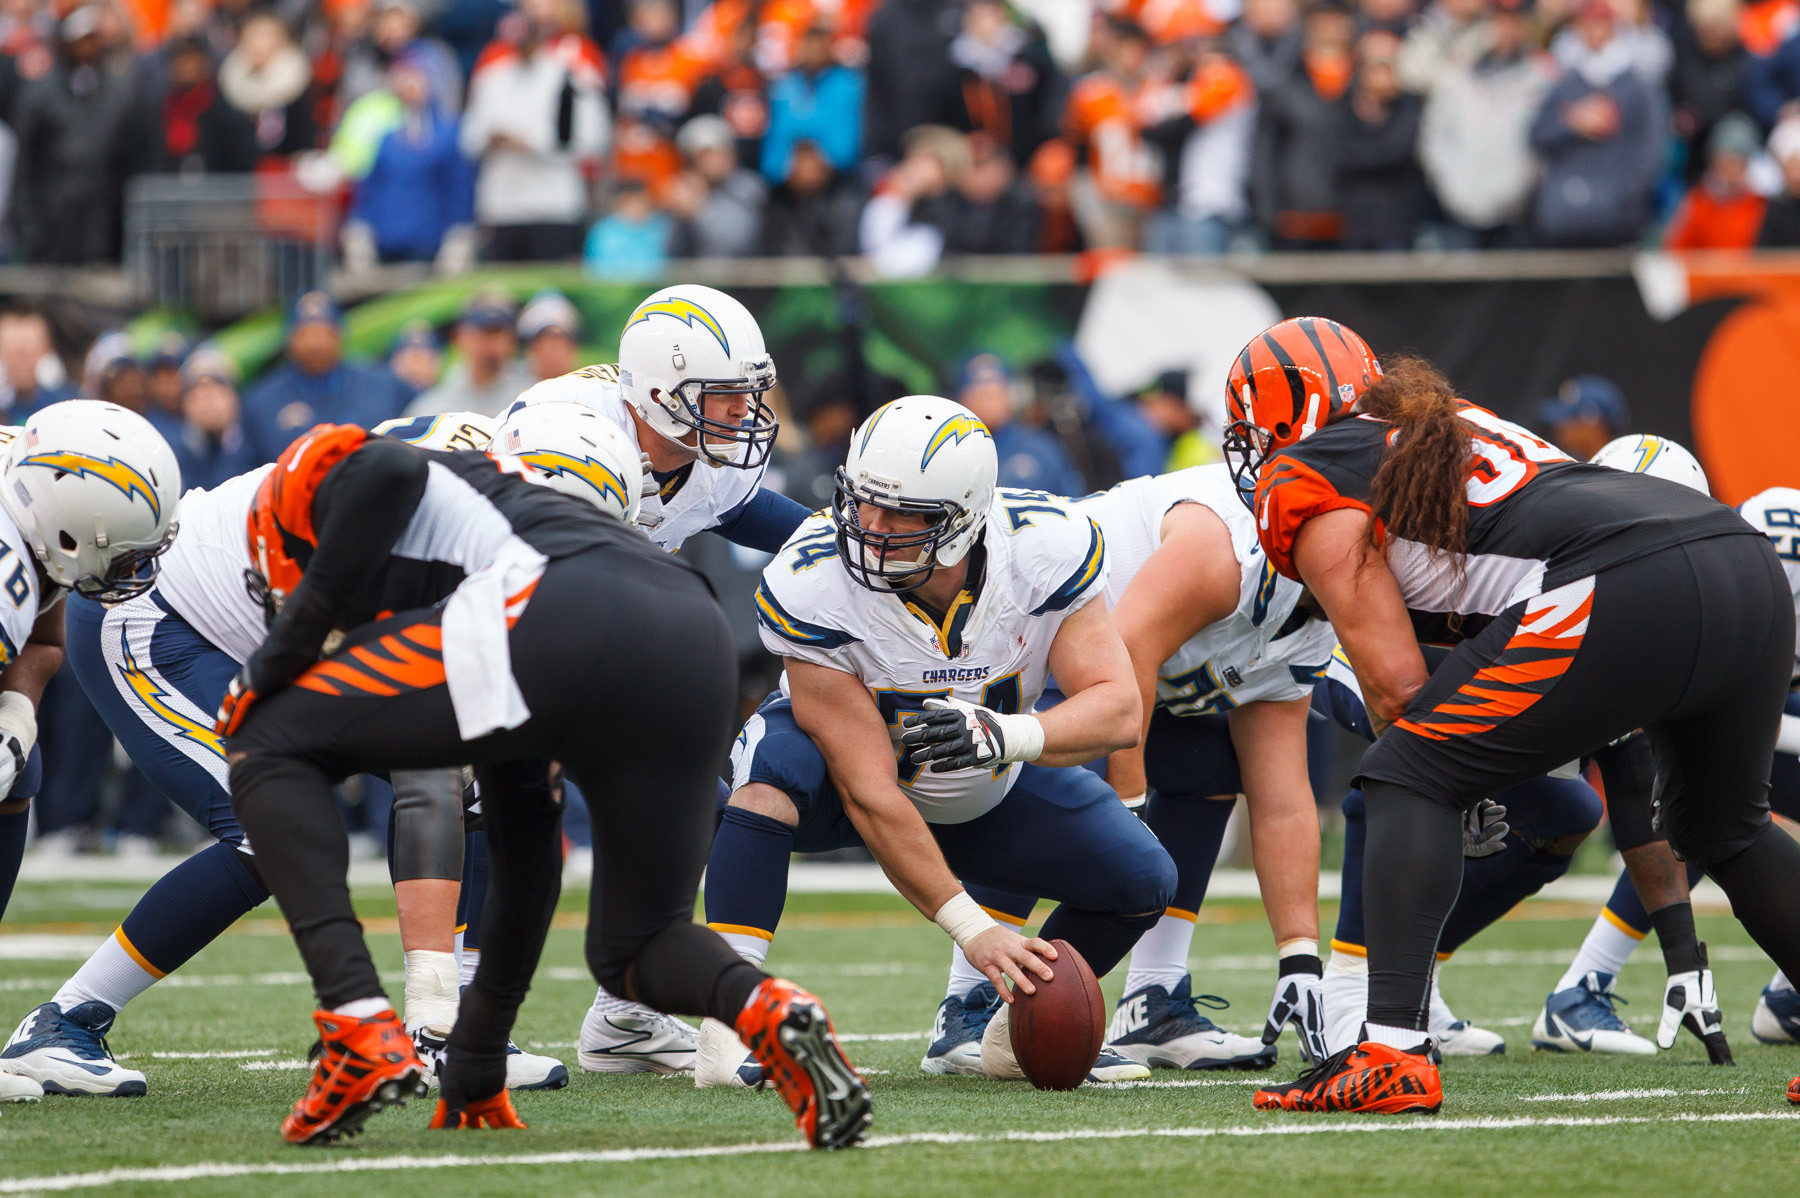 Rich Ohrnberger, at middle, stepped into action last Sunday and helped lead the San Diego Chargers to victory.